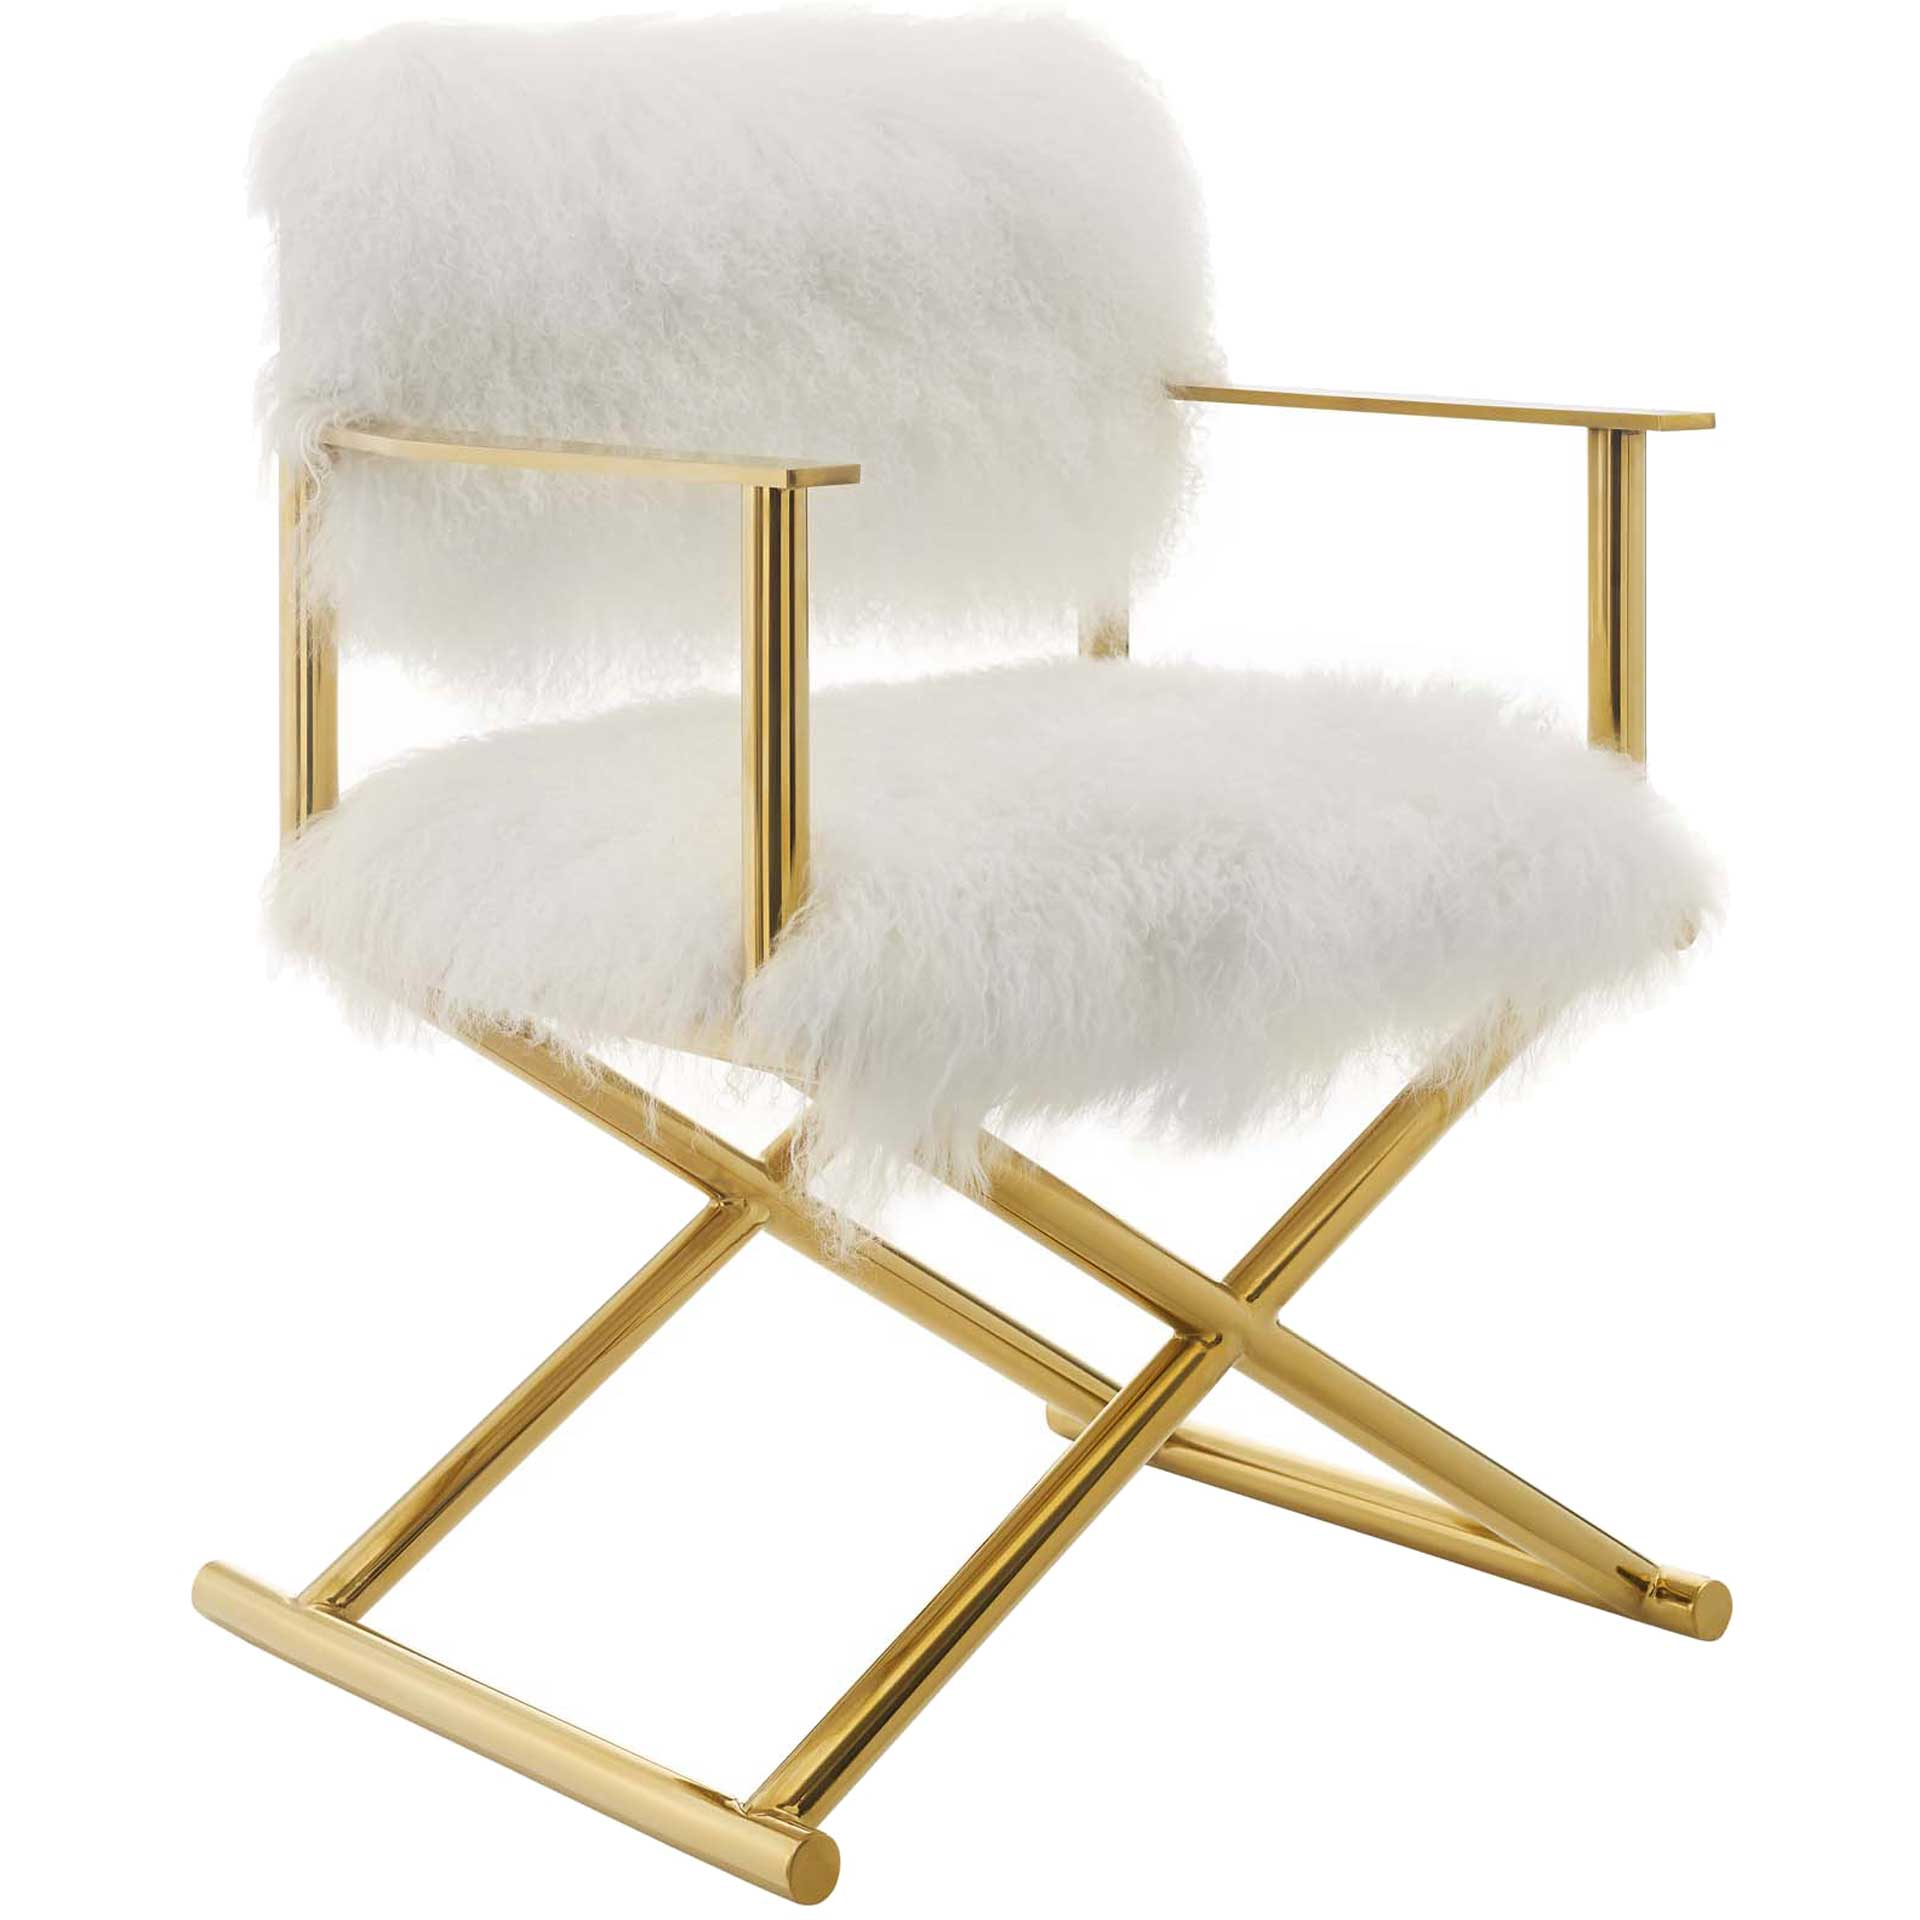 Ace Director's Chair Gold/White